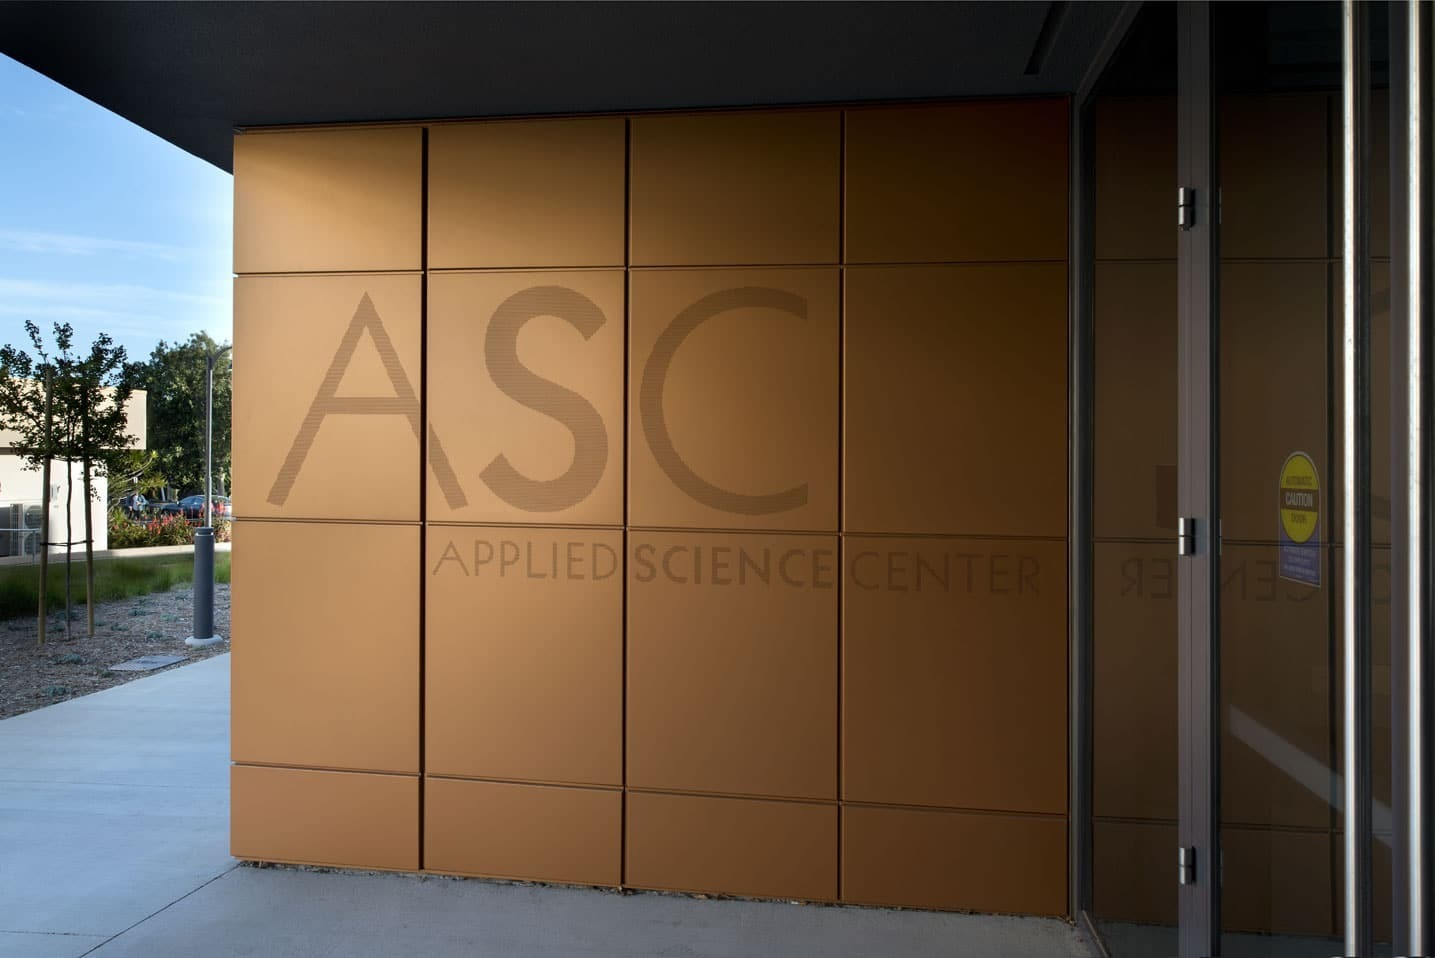 Dri-Design has many different cladding panels available.  This one allows the business to display their name on the panels.